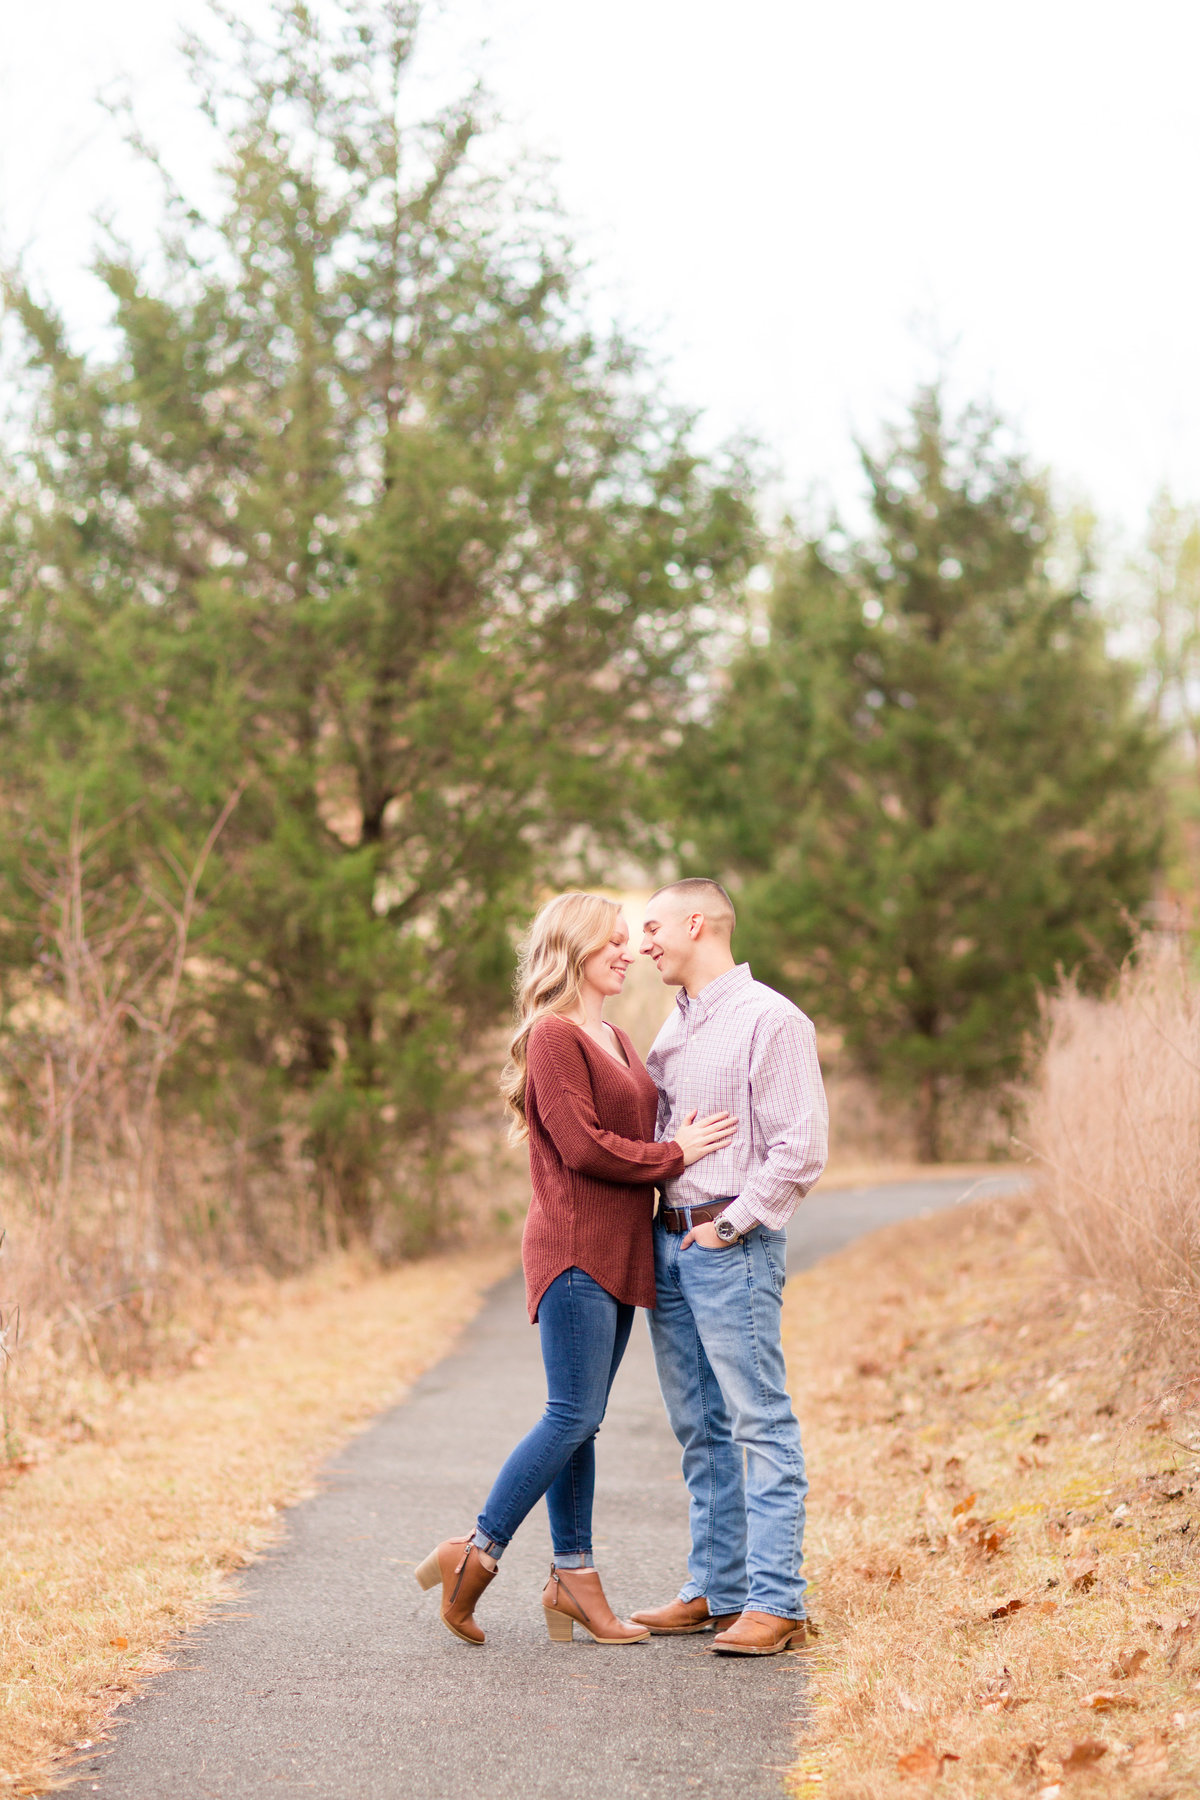 Stafford, VA engagement photography by Marie Hamilton Photography